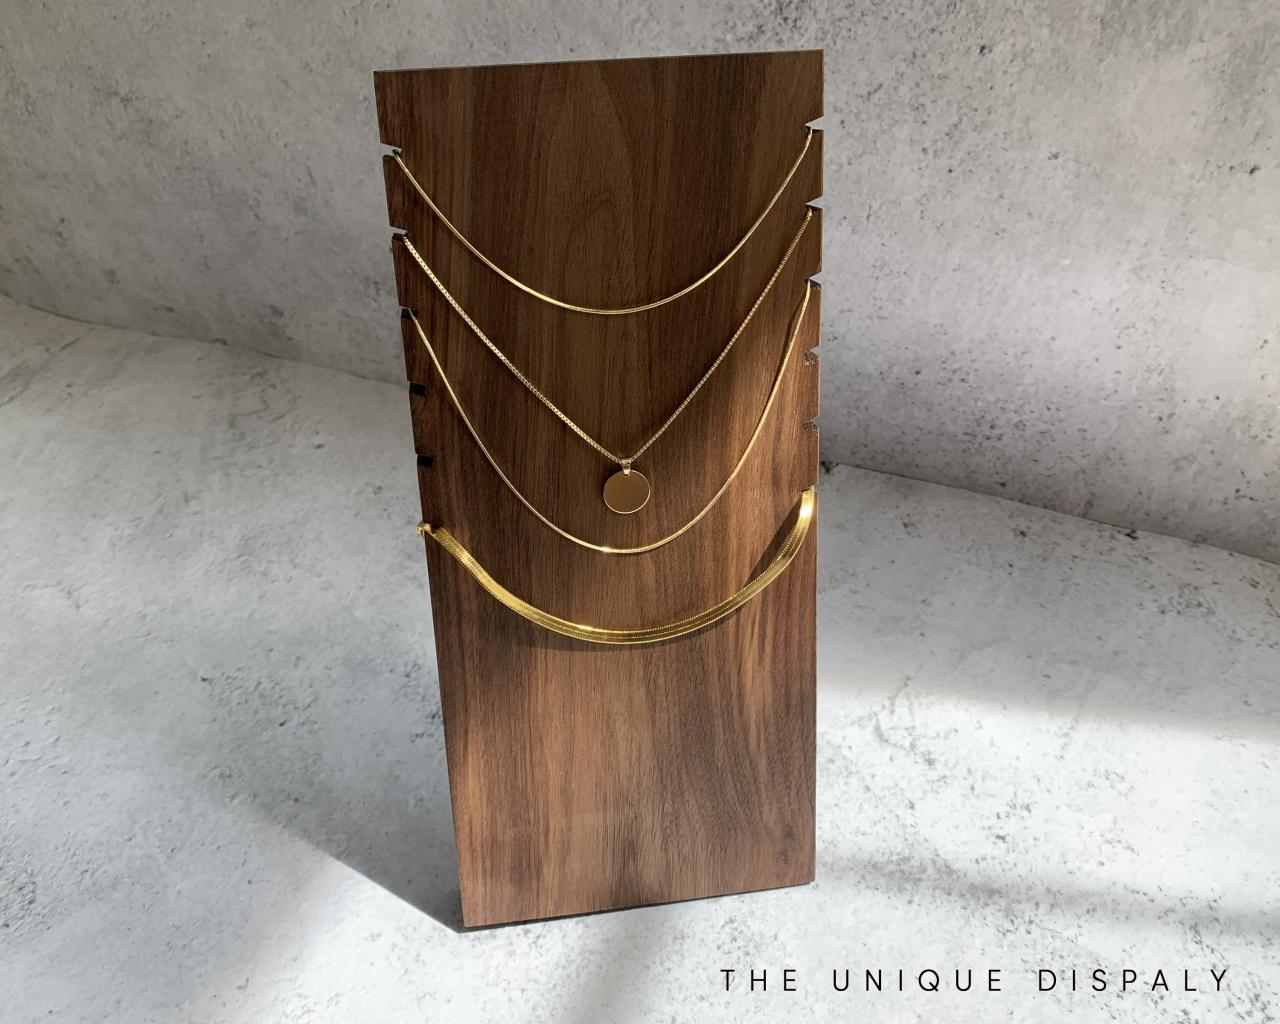 jewelry display case, jewelry display stand, jewelry necklace organizer, necklace stand, necklace holder, jewelry holder, wood display stand, 717